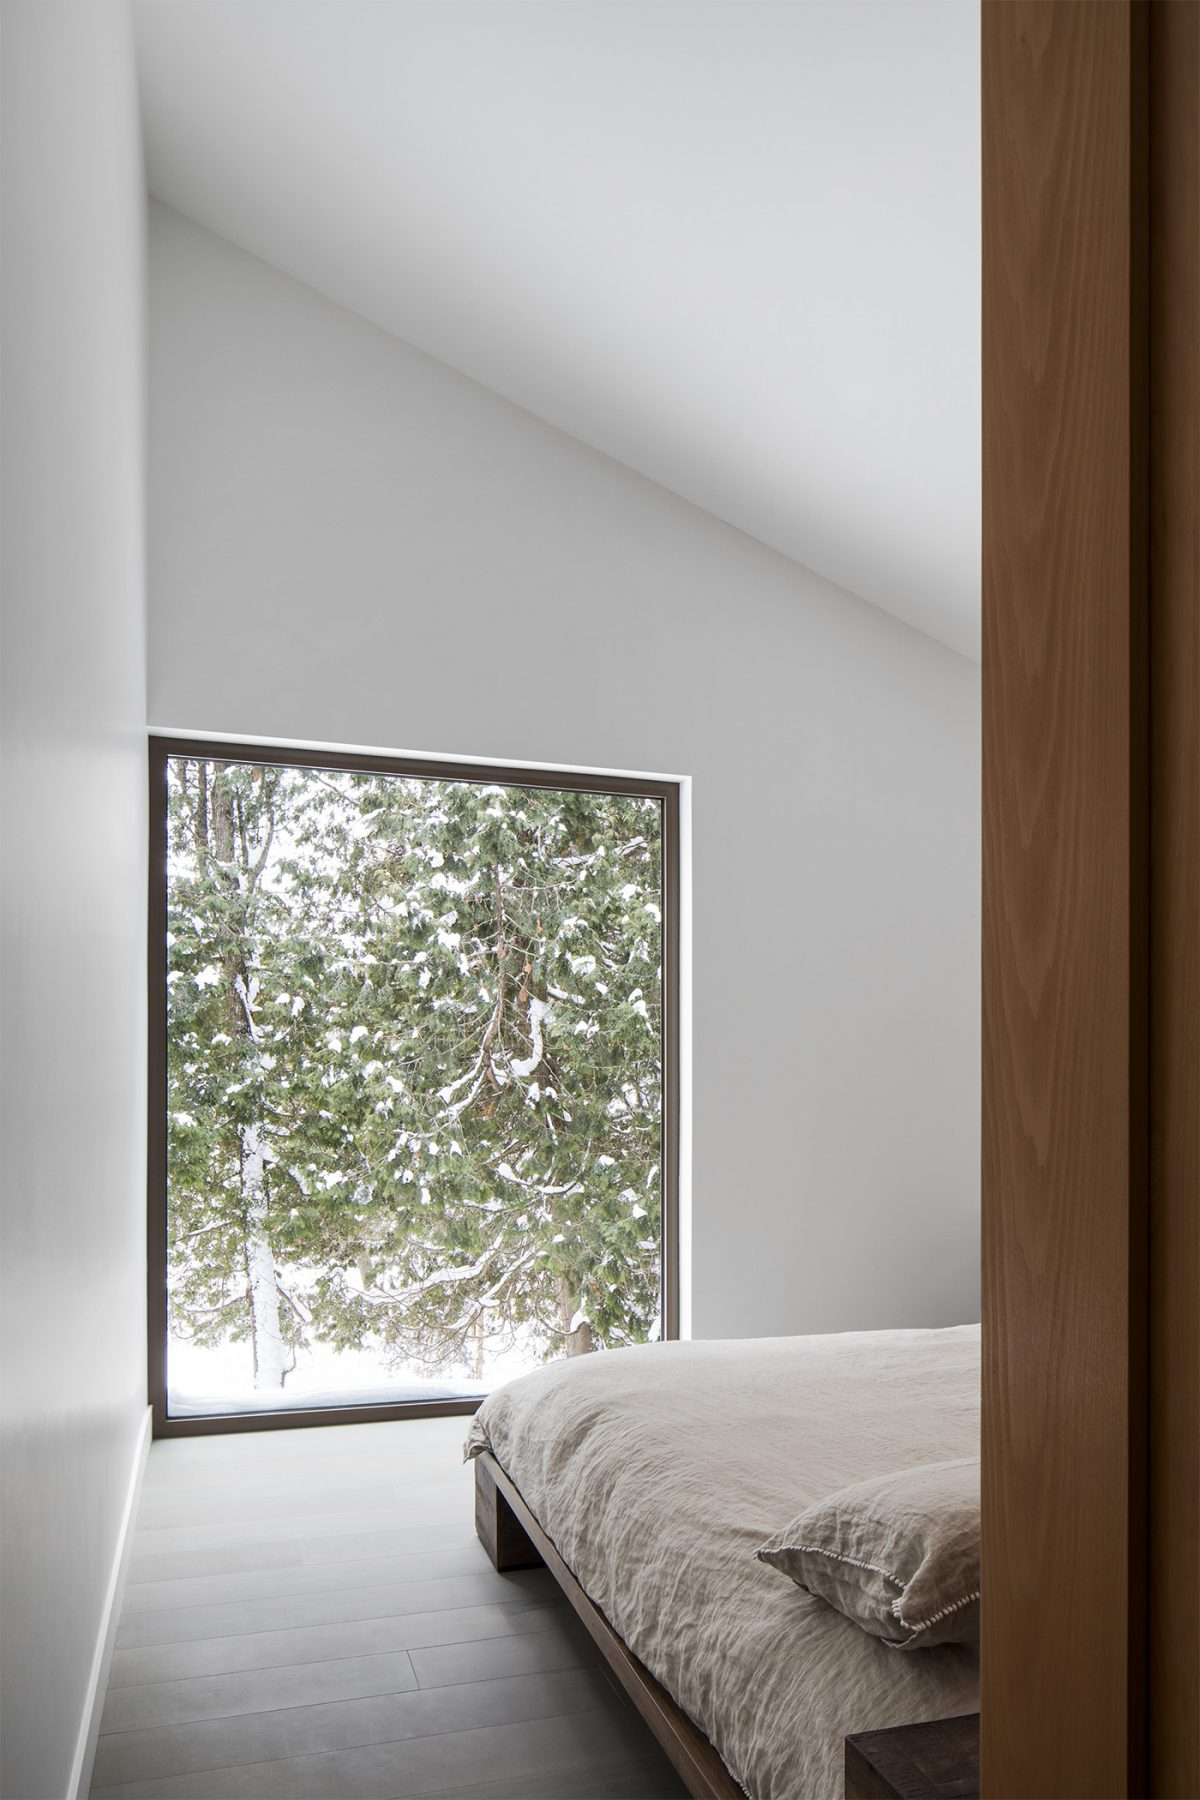 Bedroom with window on nature